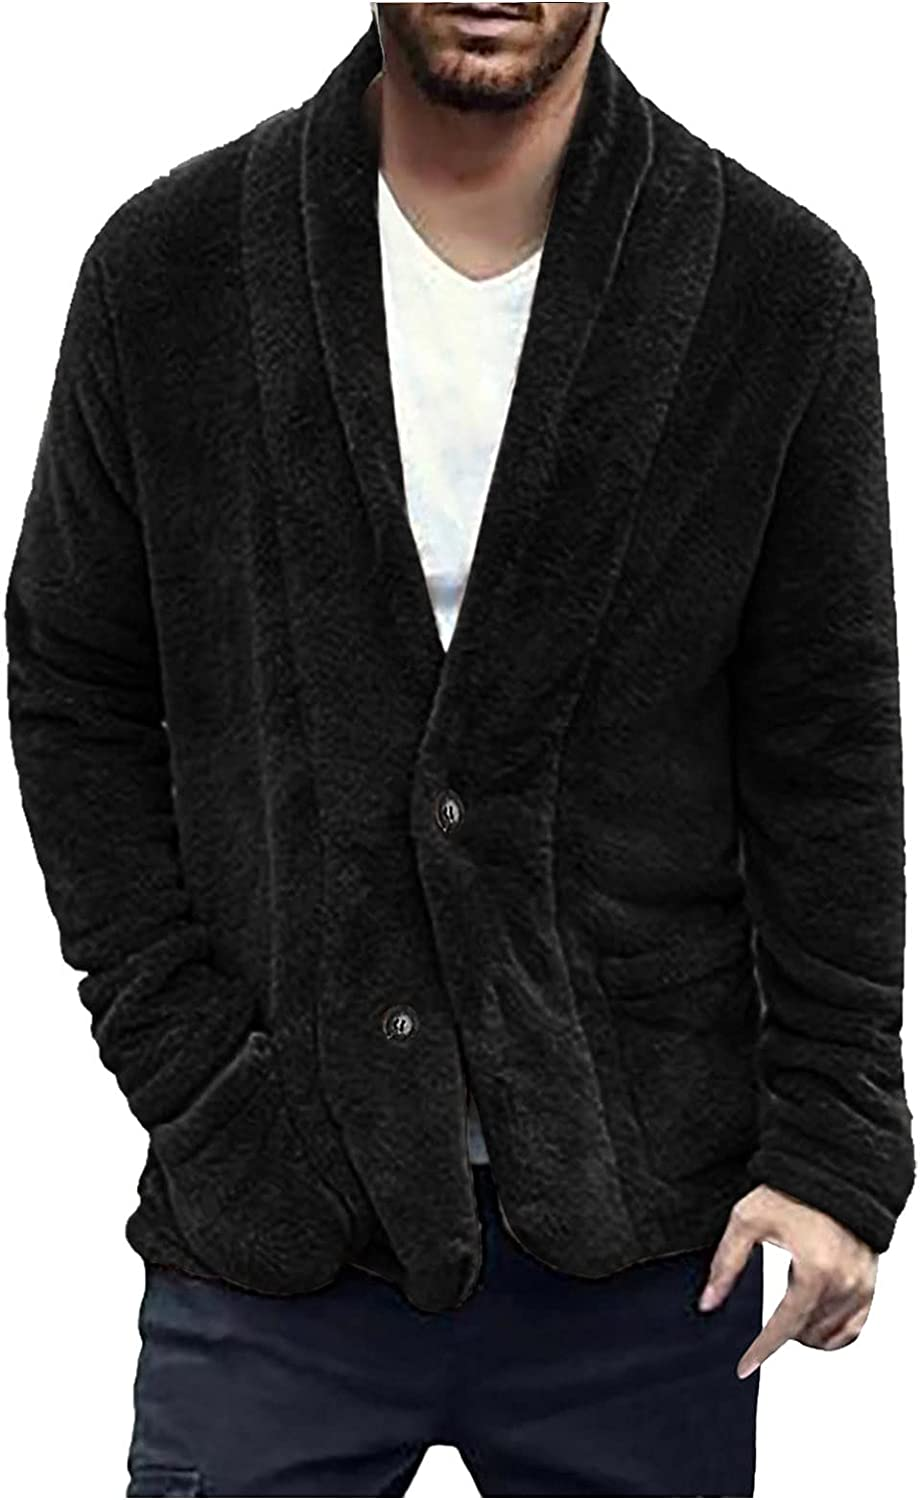 XXBR Fleece Cardigans for Mens, Fall Double-sided Fluffy Single Breasted Button Casual Fuzzy Outerwear with Pockets